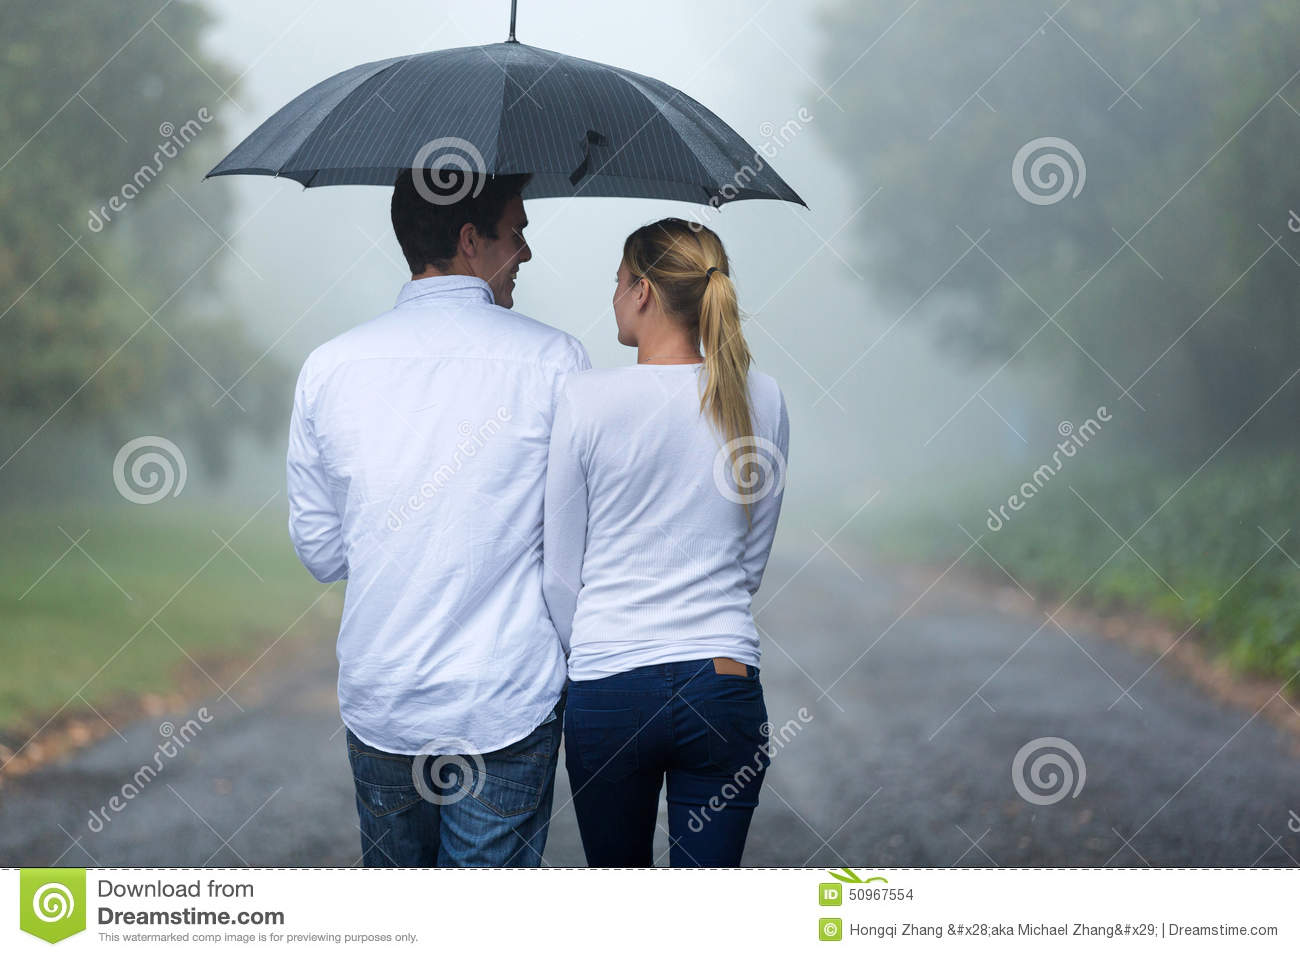 Couple walking rain stock photo. Image of handsome, lovely ...